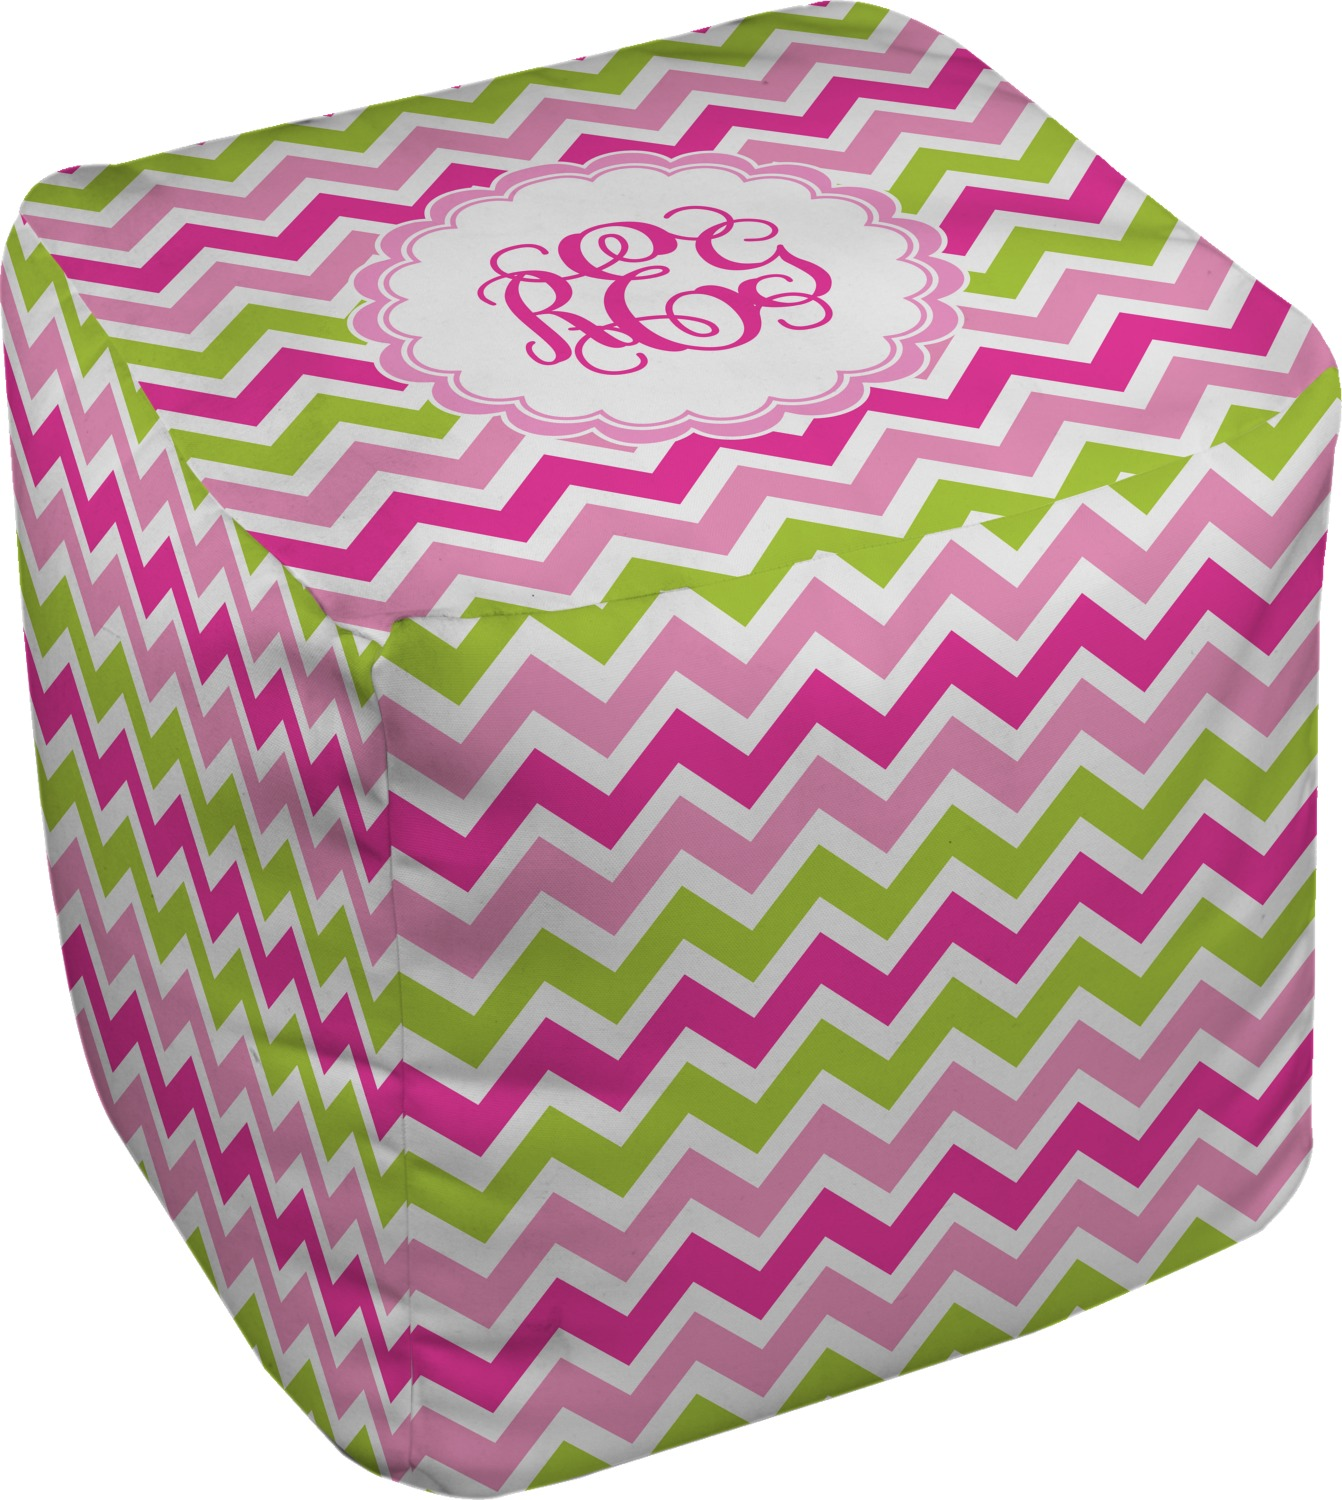 Remarkable Pink Green Chevron Cube Pouf Ottoman Personalized Cjindustries Chair Design For Home Cjindustriesco